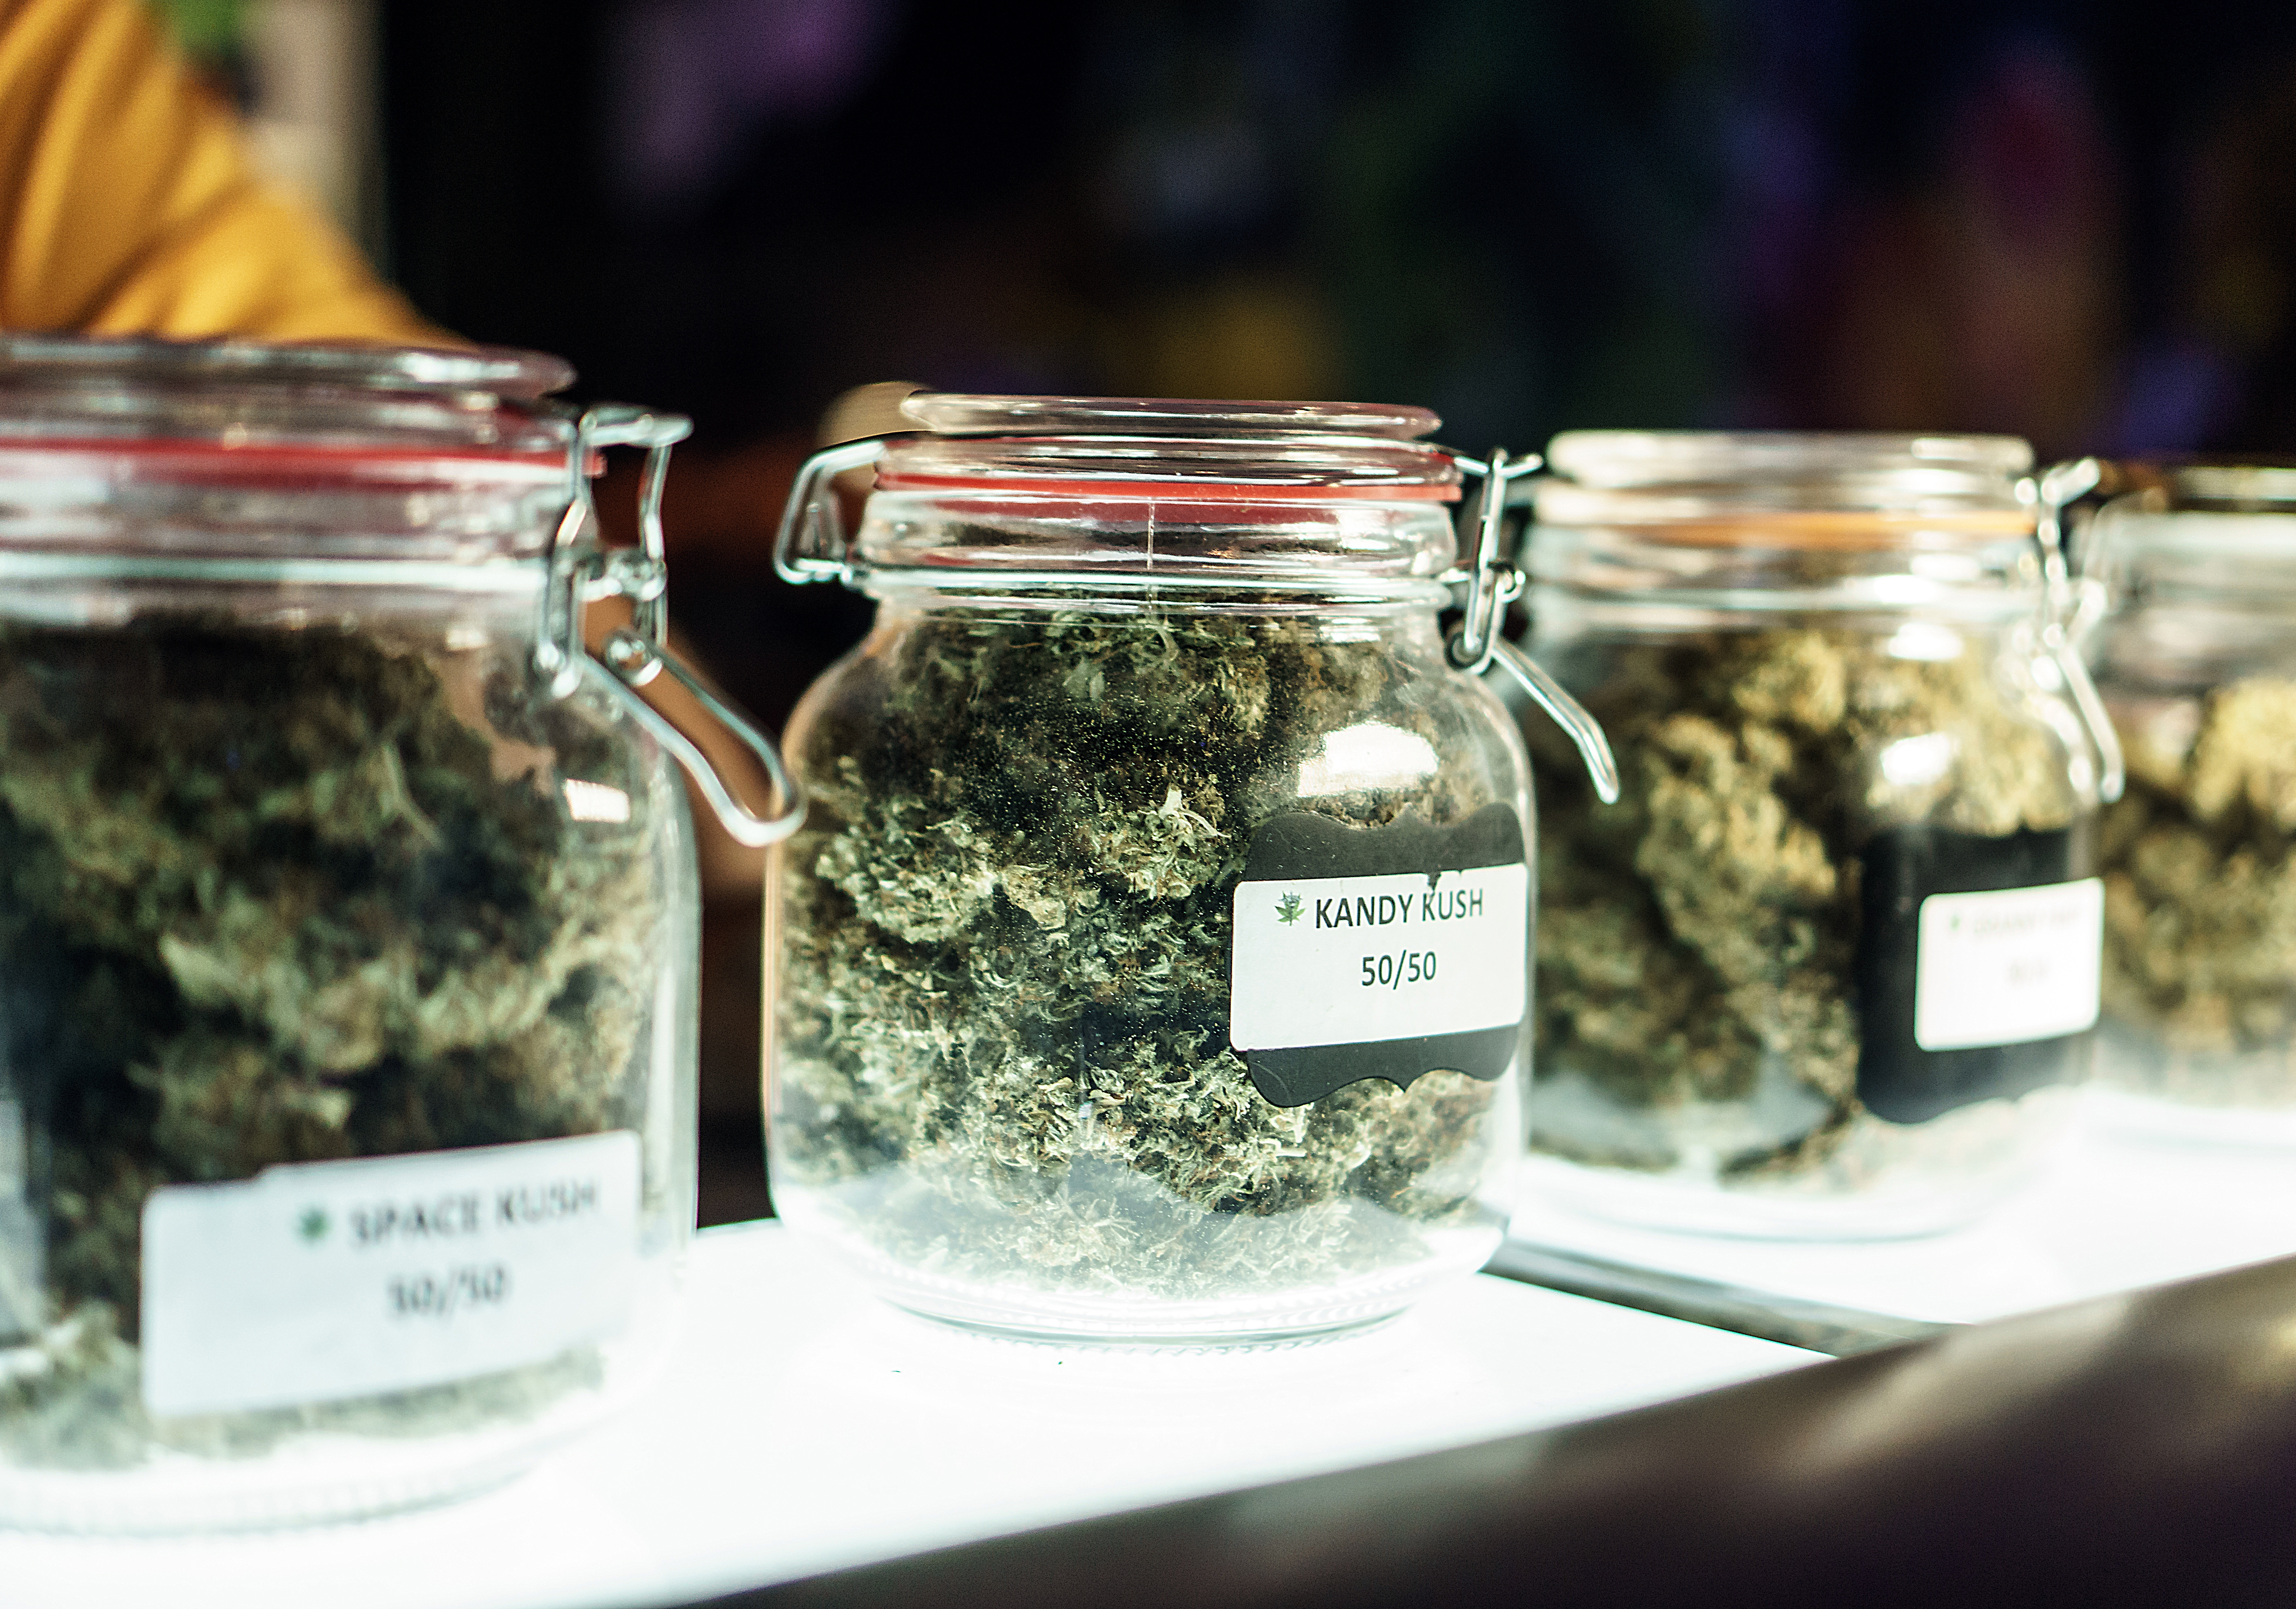 Bud Dispensary 101: Questions to Ask and What to Expect on Your First Visit